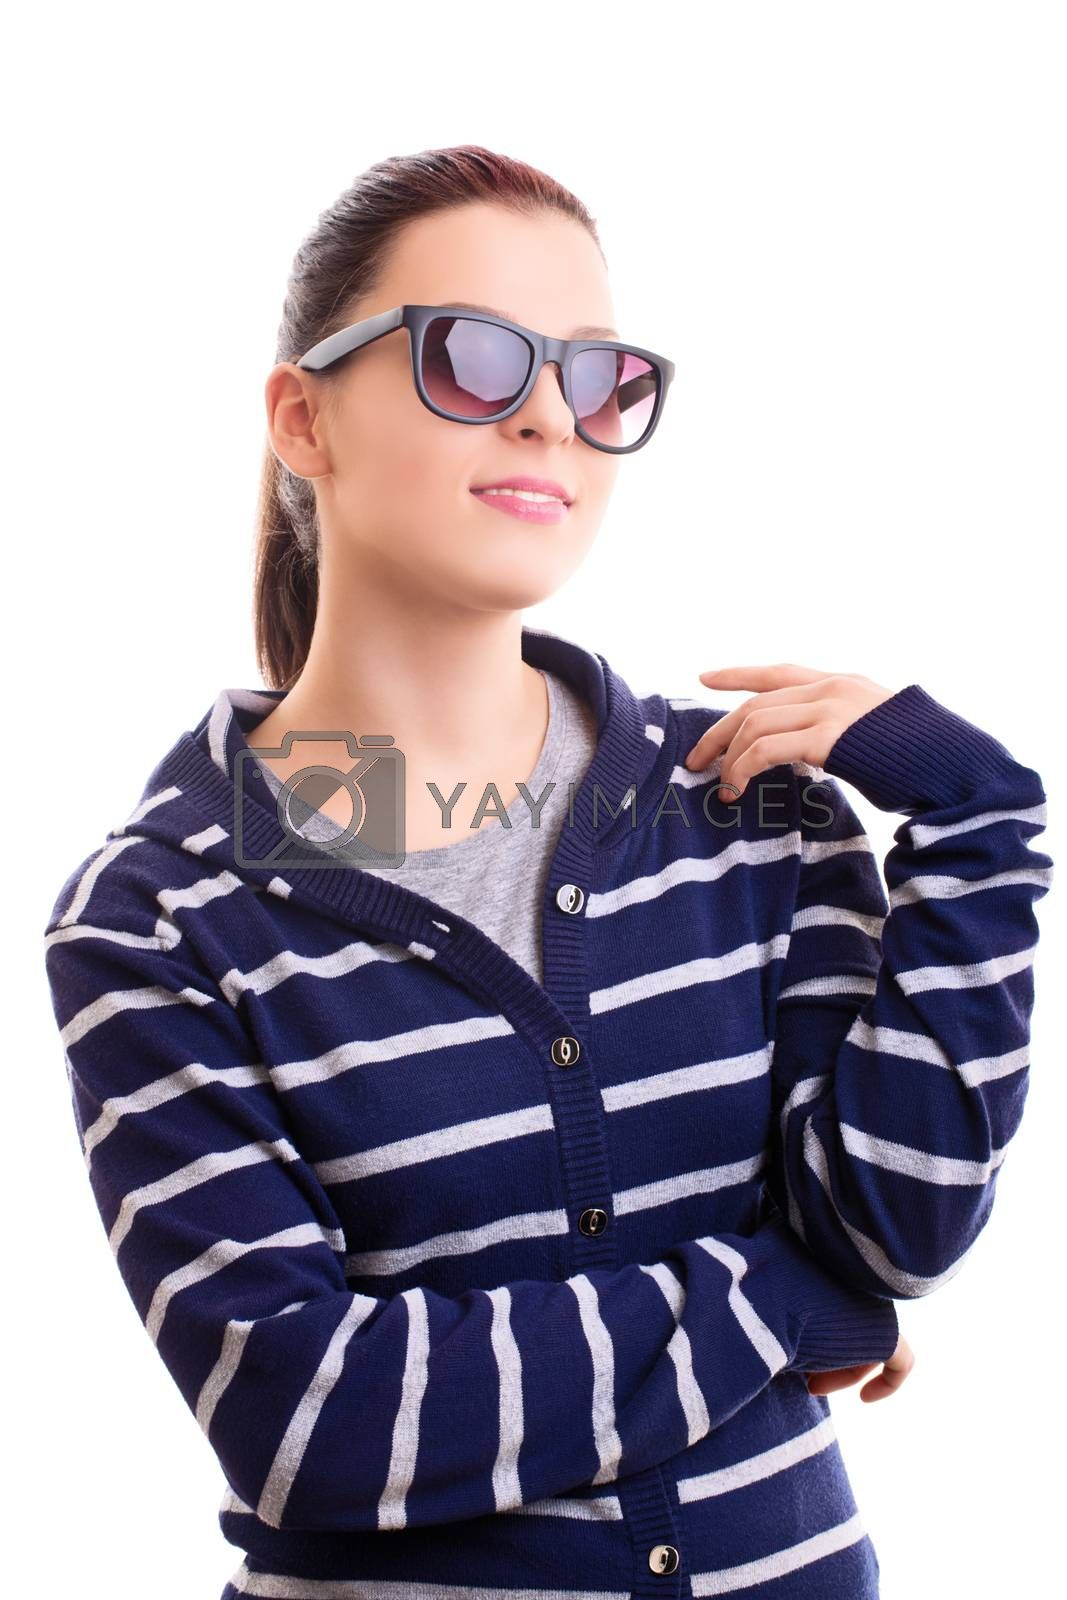 Portrait of a beautiful smiling girl in casual clothes with sunglasses, isolated on white background.